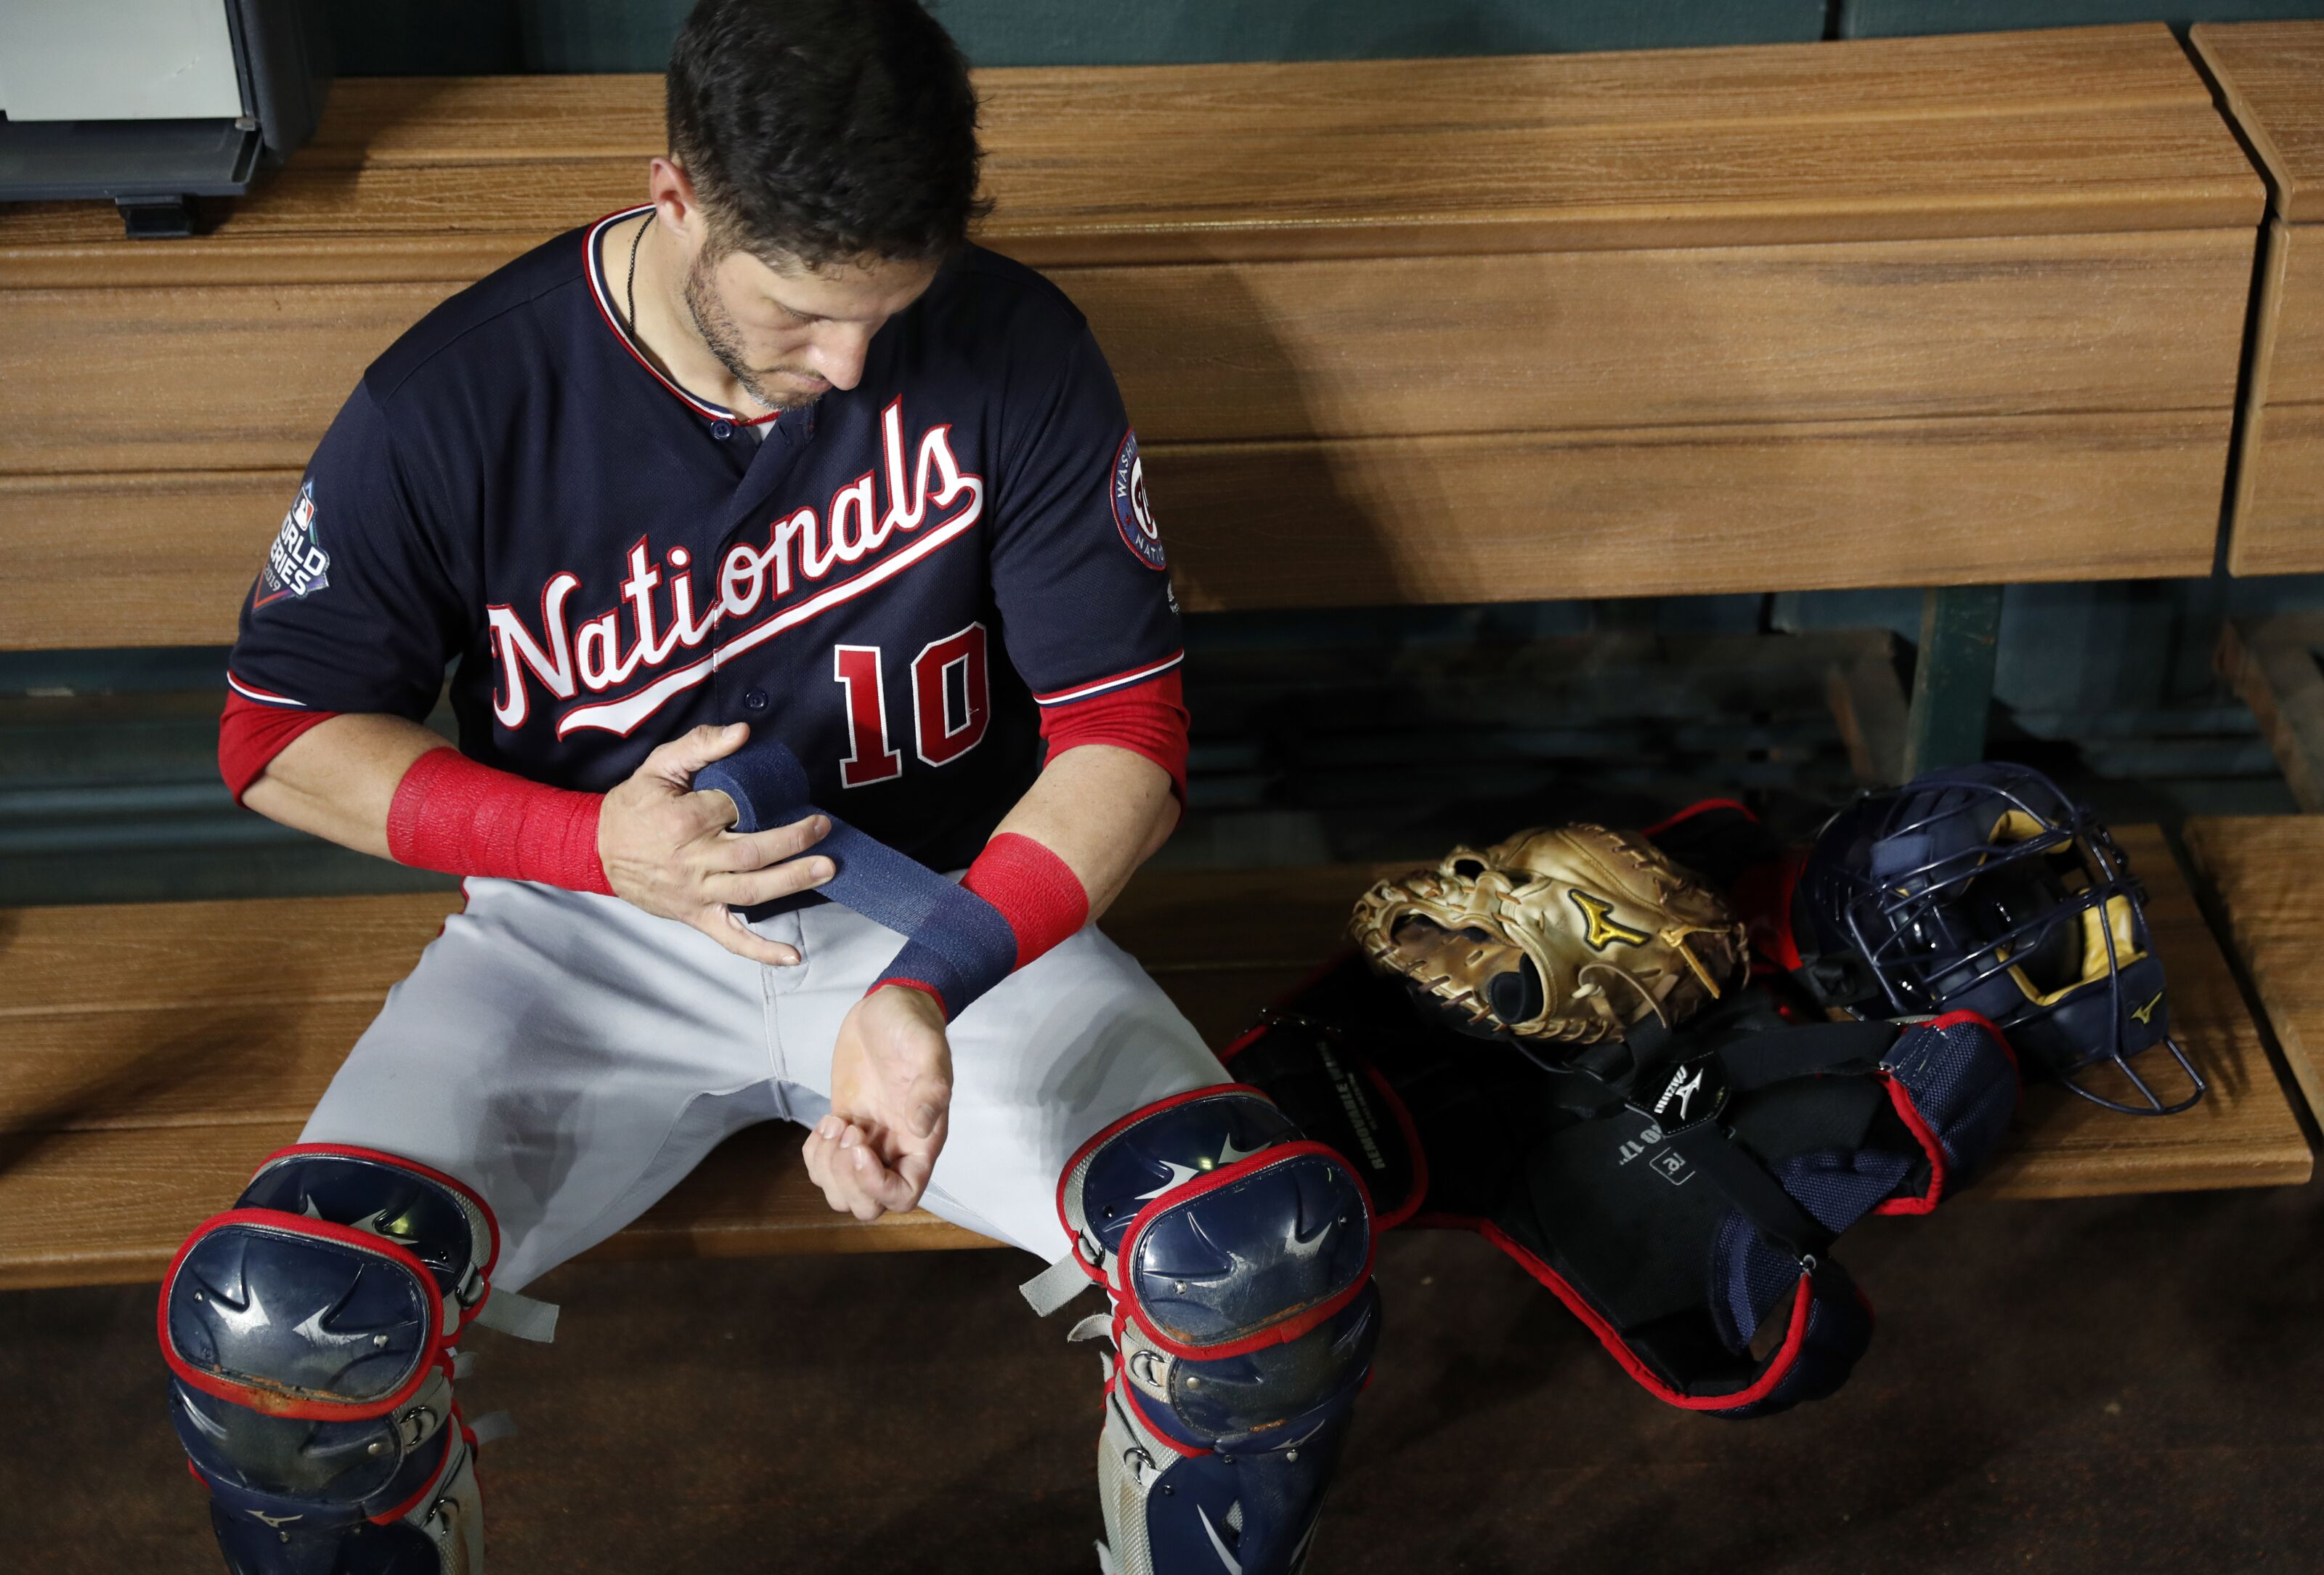 Washington Nationals have continuity with Yan Gomes